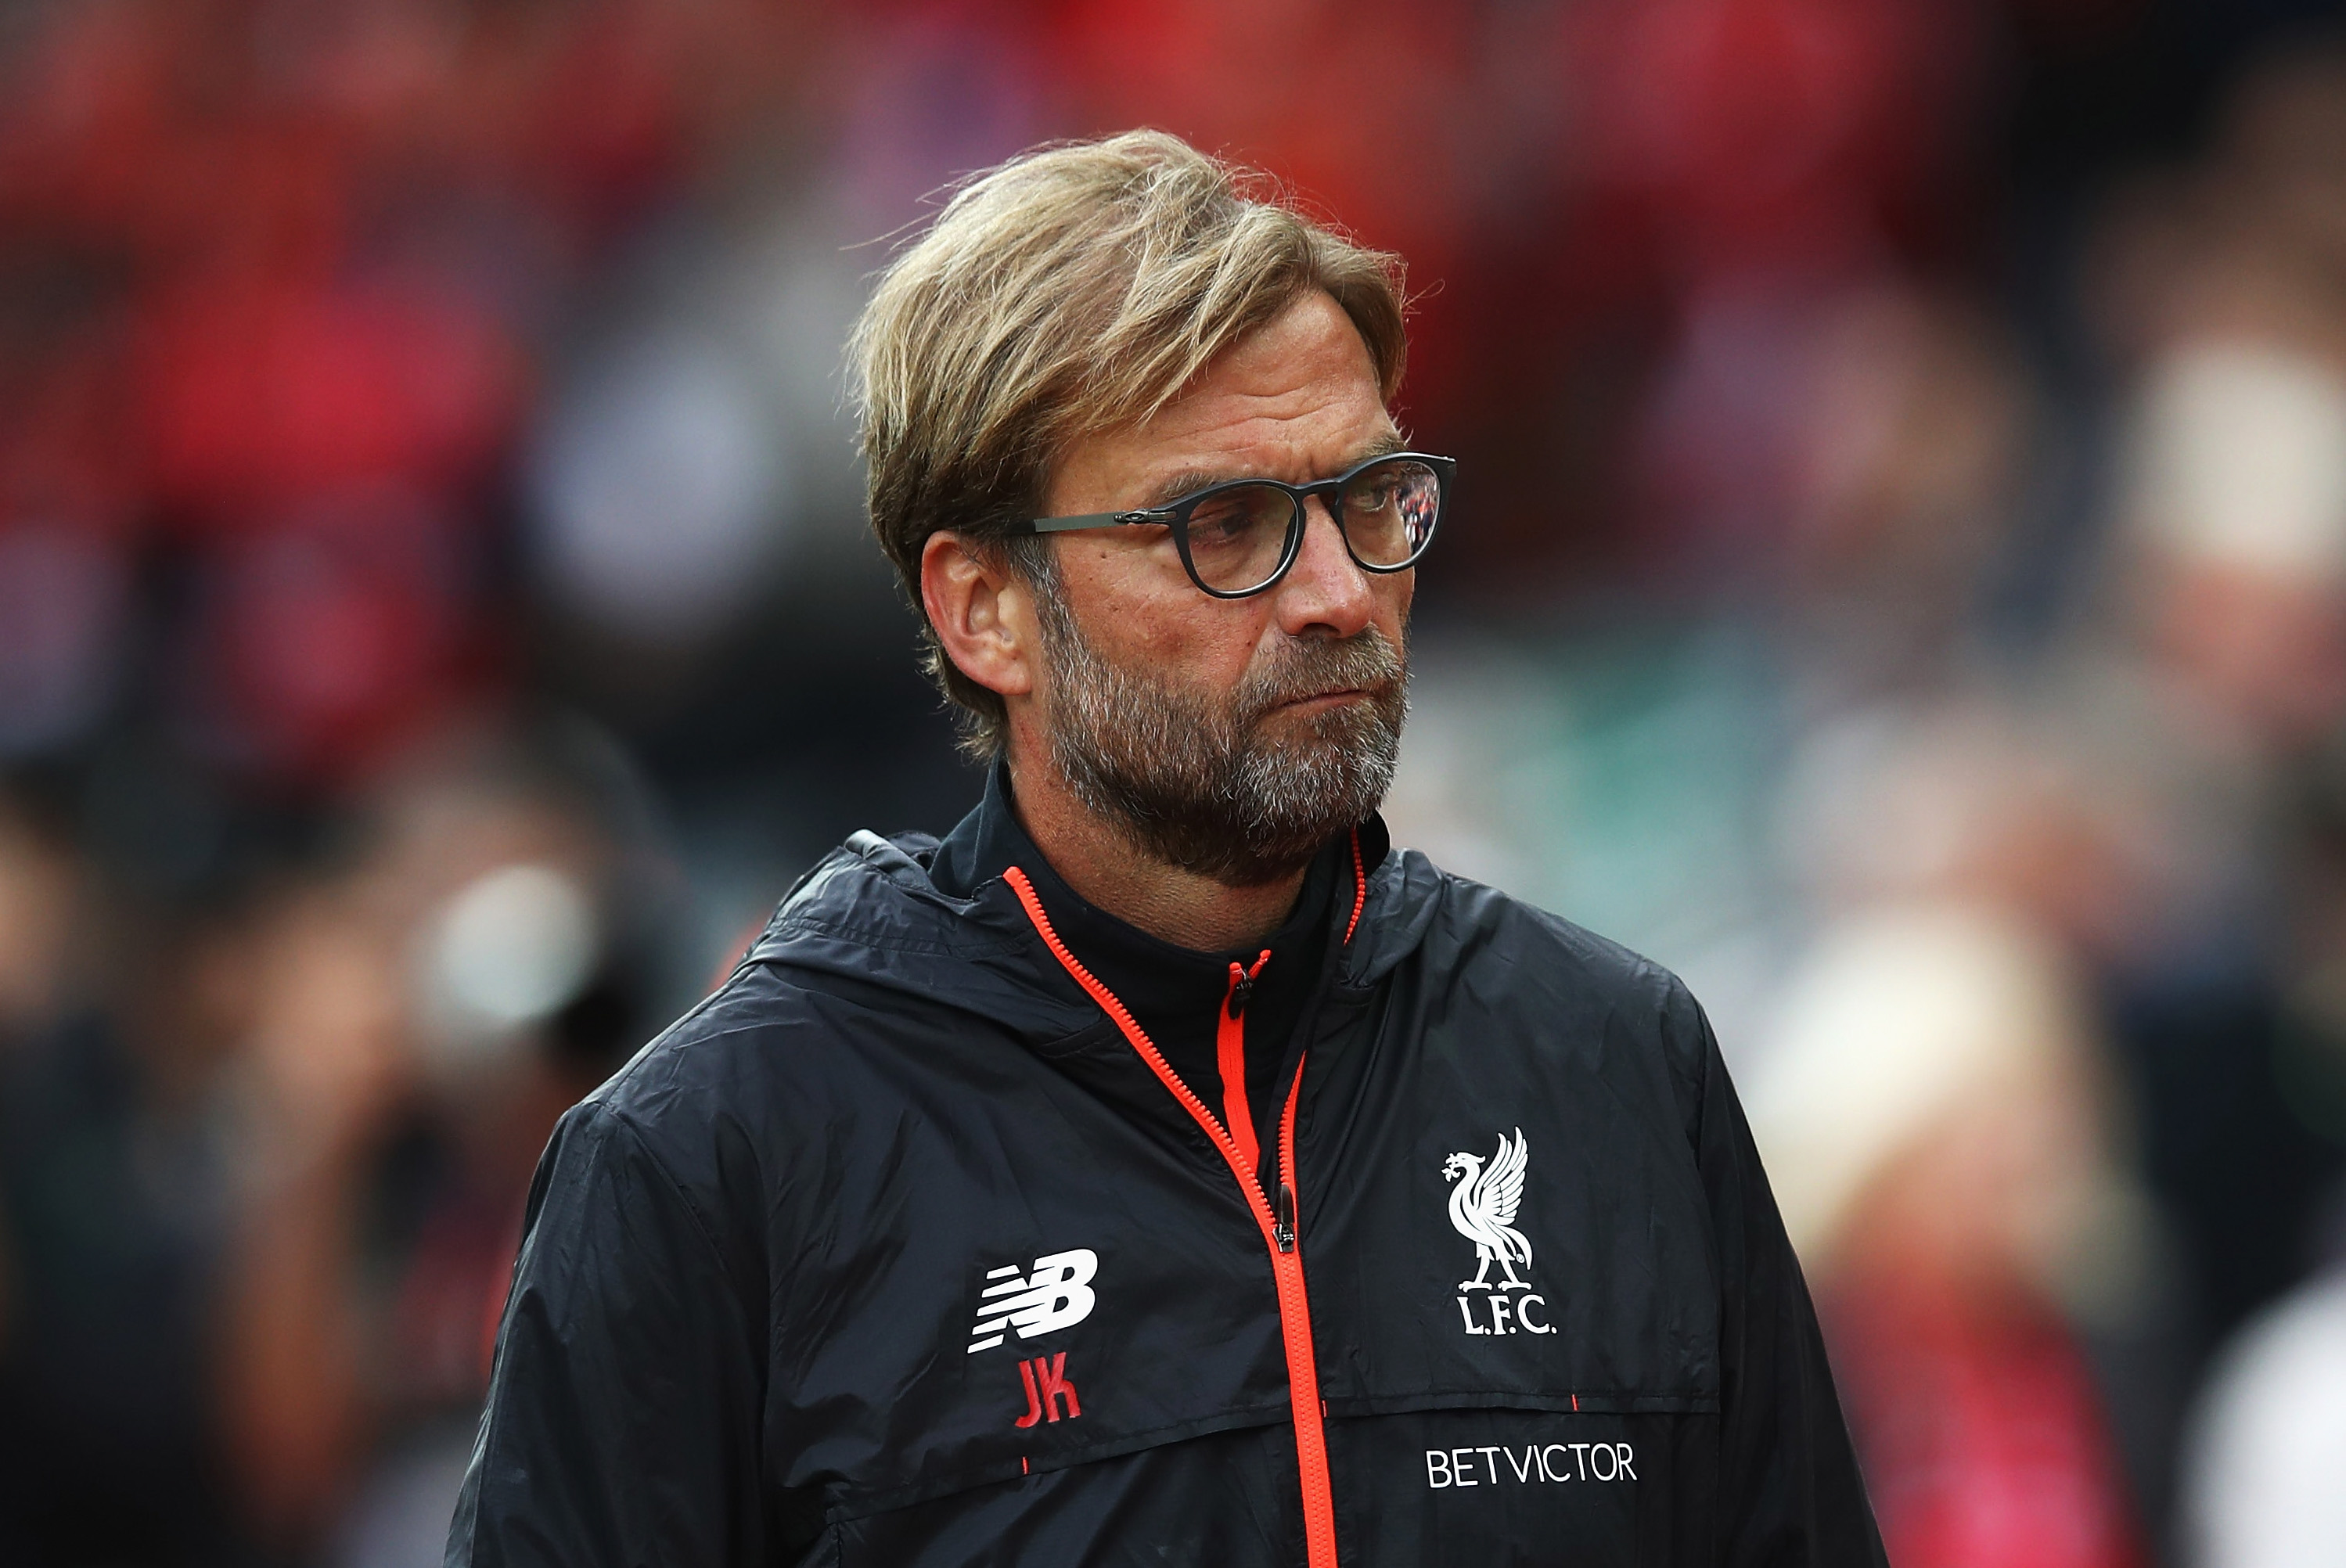 Dutch coach hits back at Jurgen Klopp